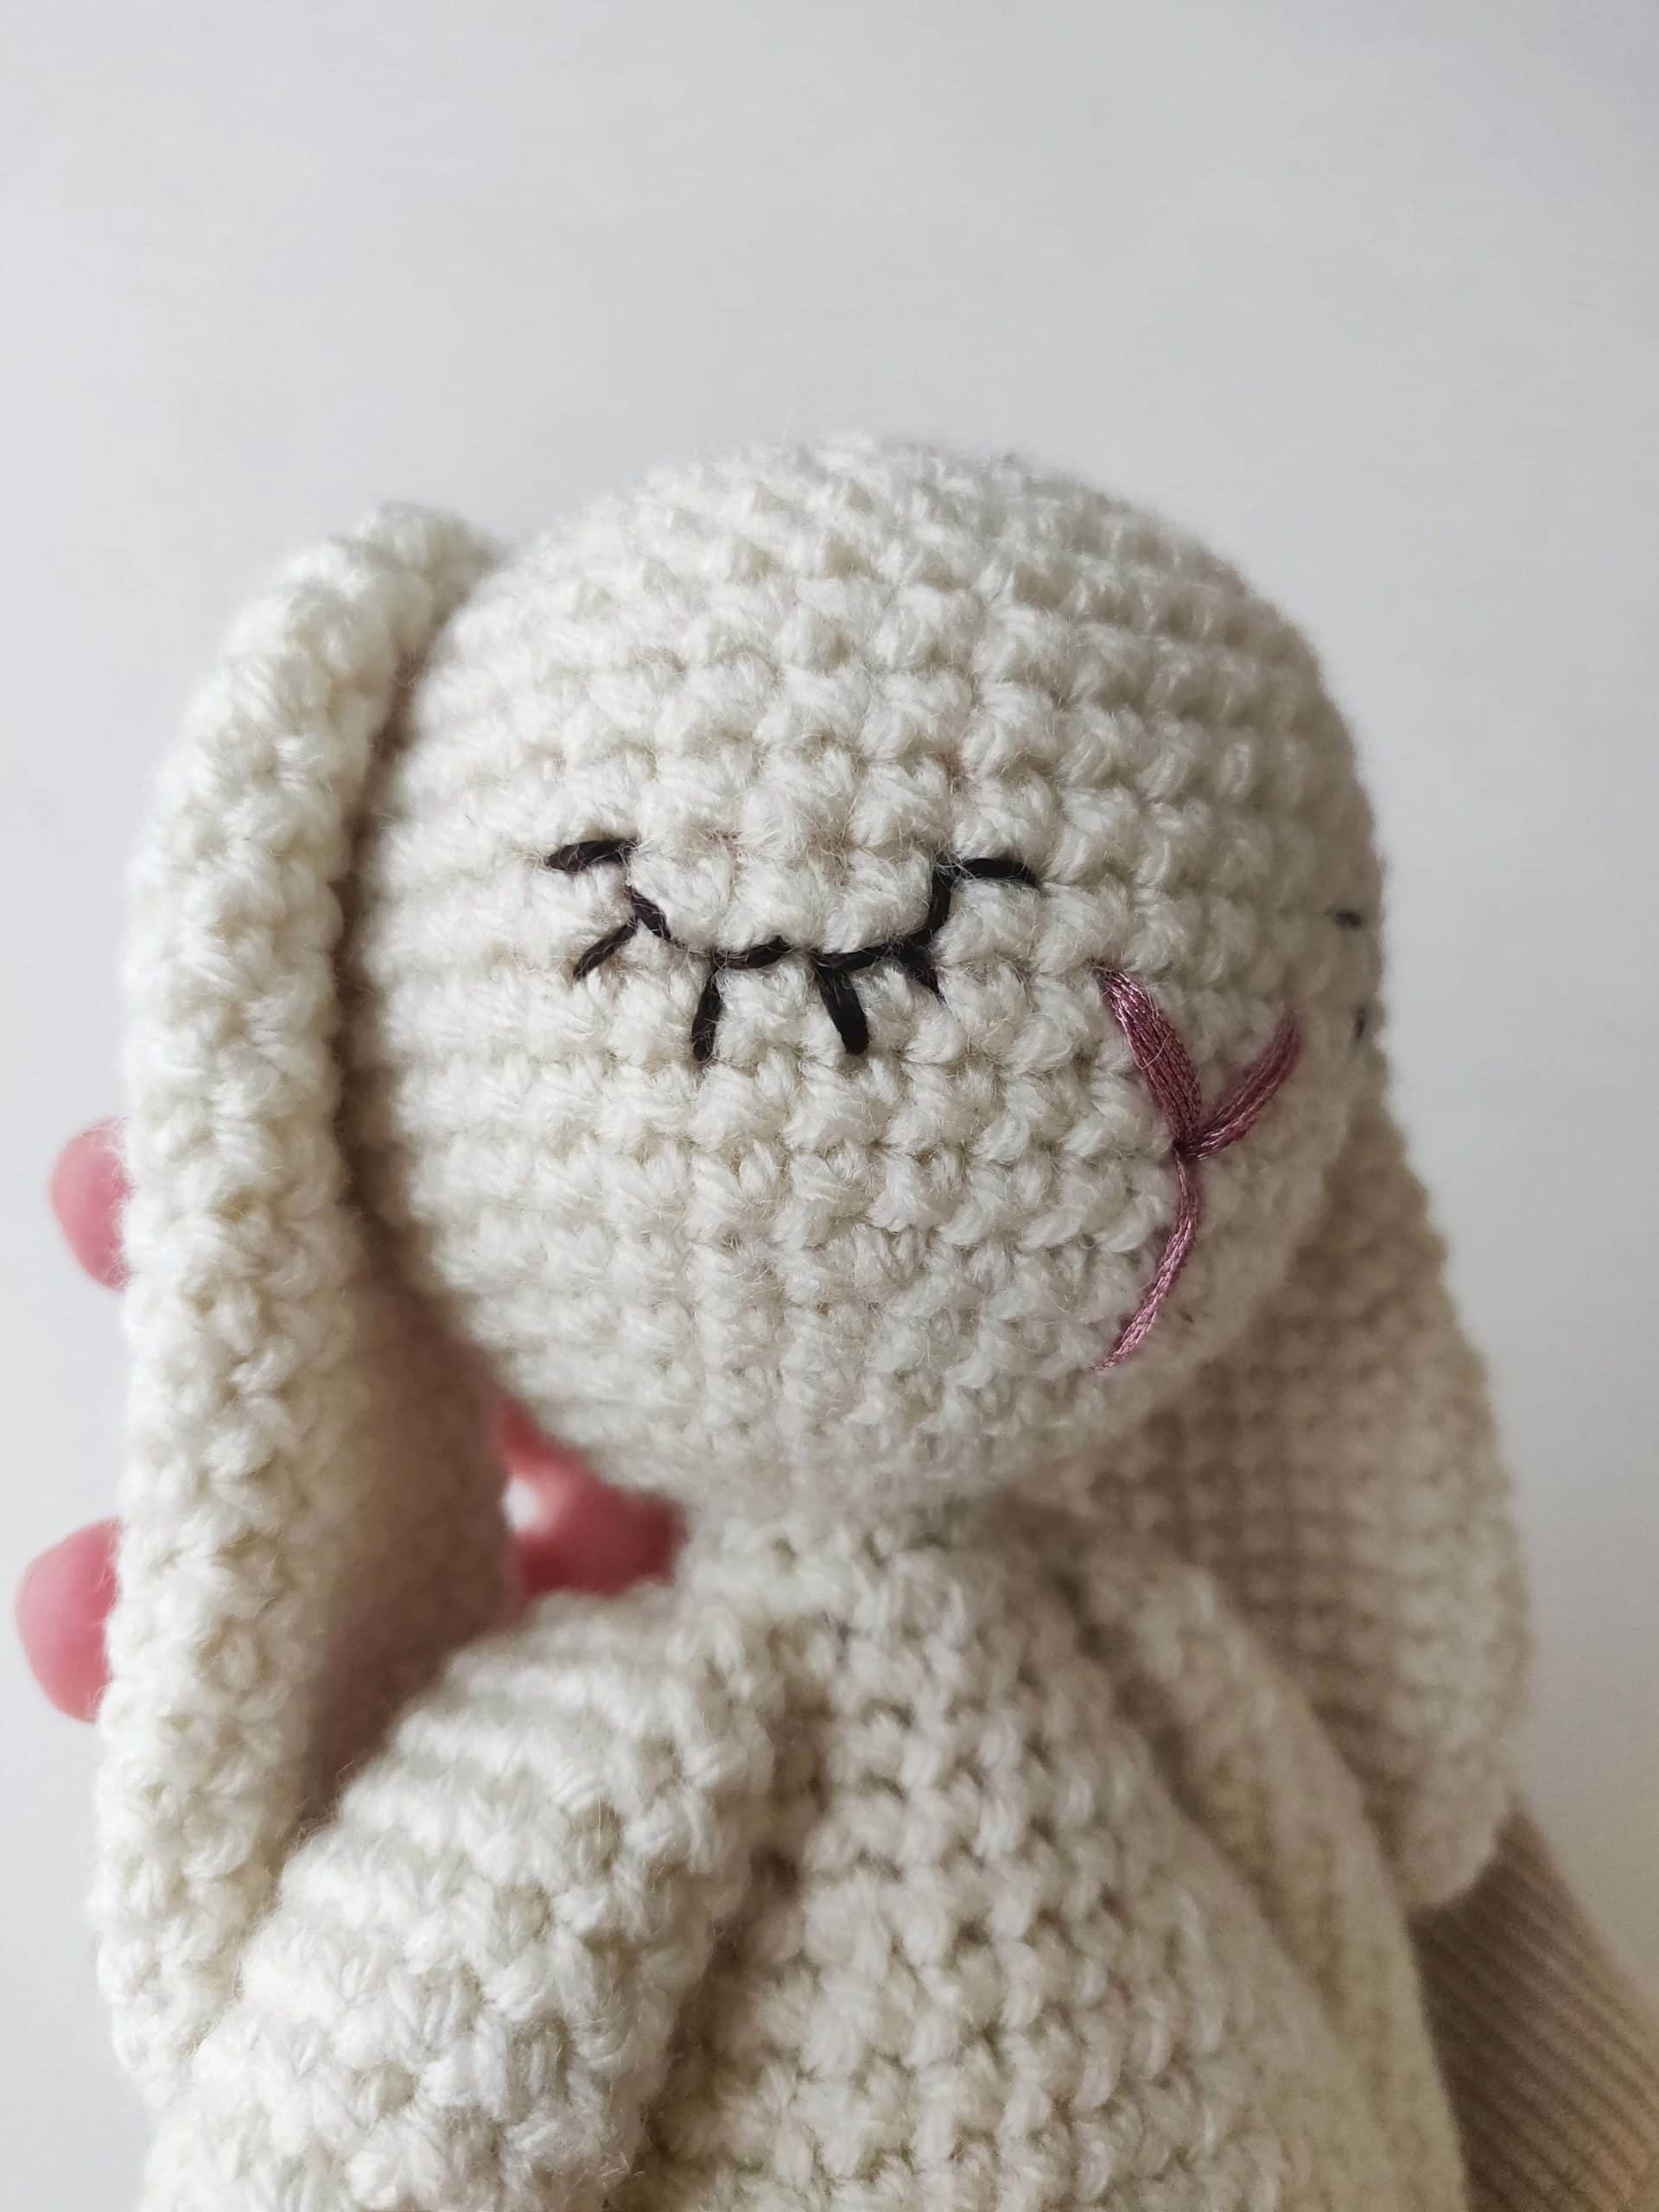 White crochet bunny facing to the side with embroidered eyes and eyelashes.